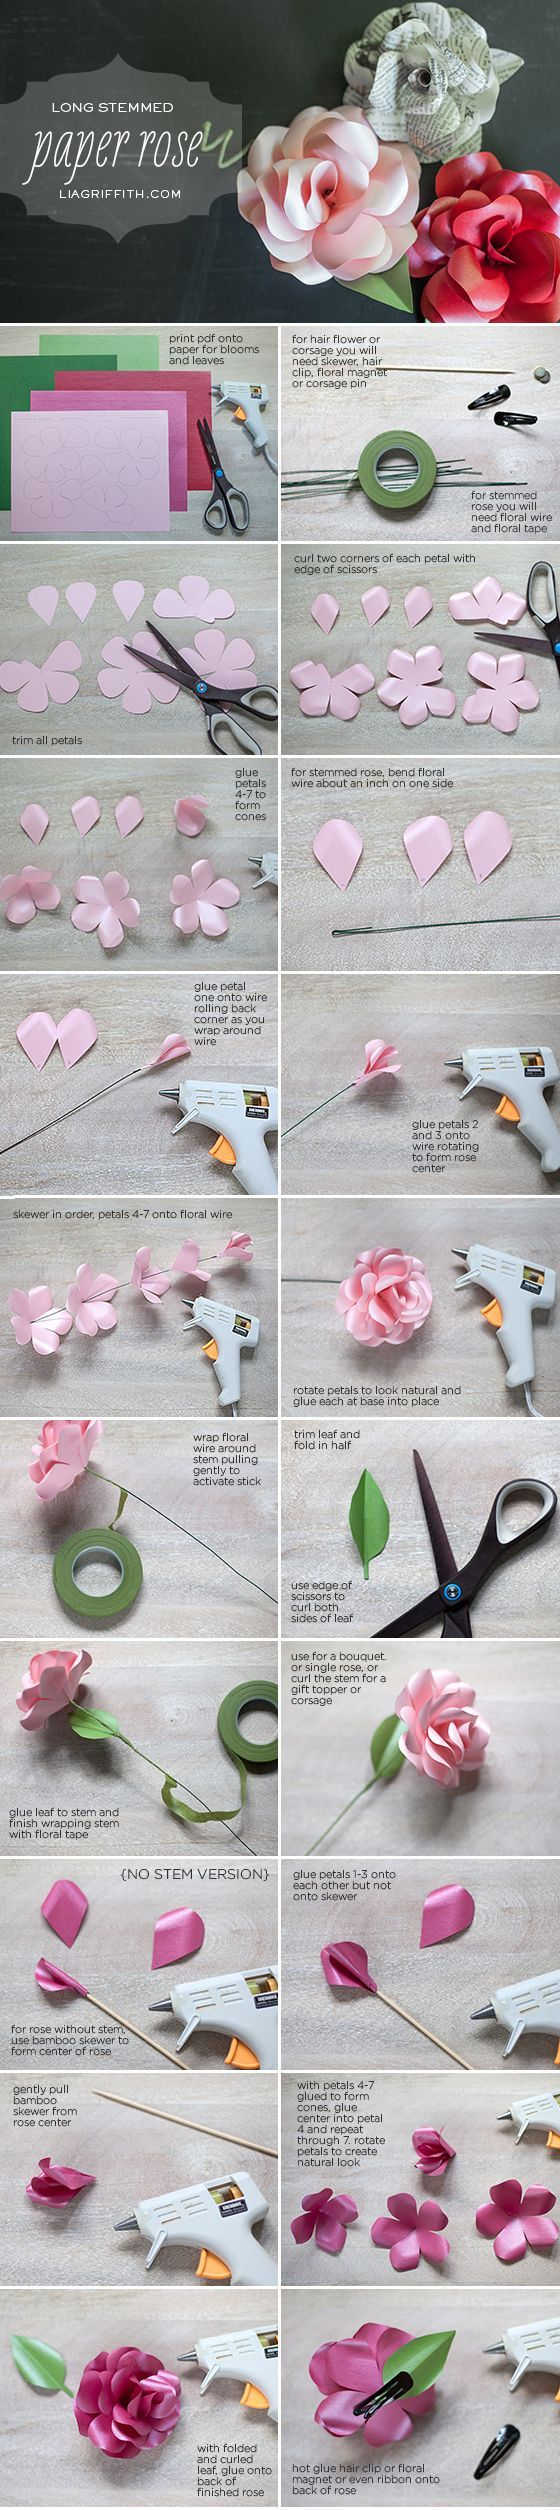 DIY Paper Rose Made with a Metallic Paper Long Stemmed Rose Tutorial (Lia Griffith)